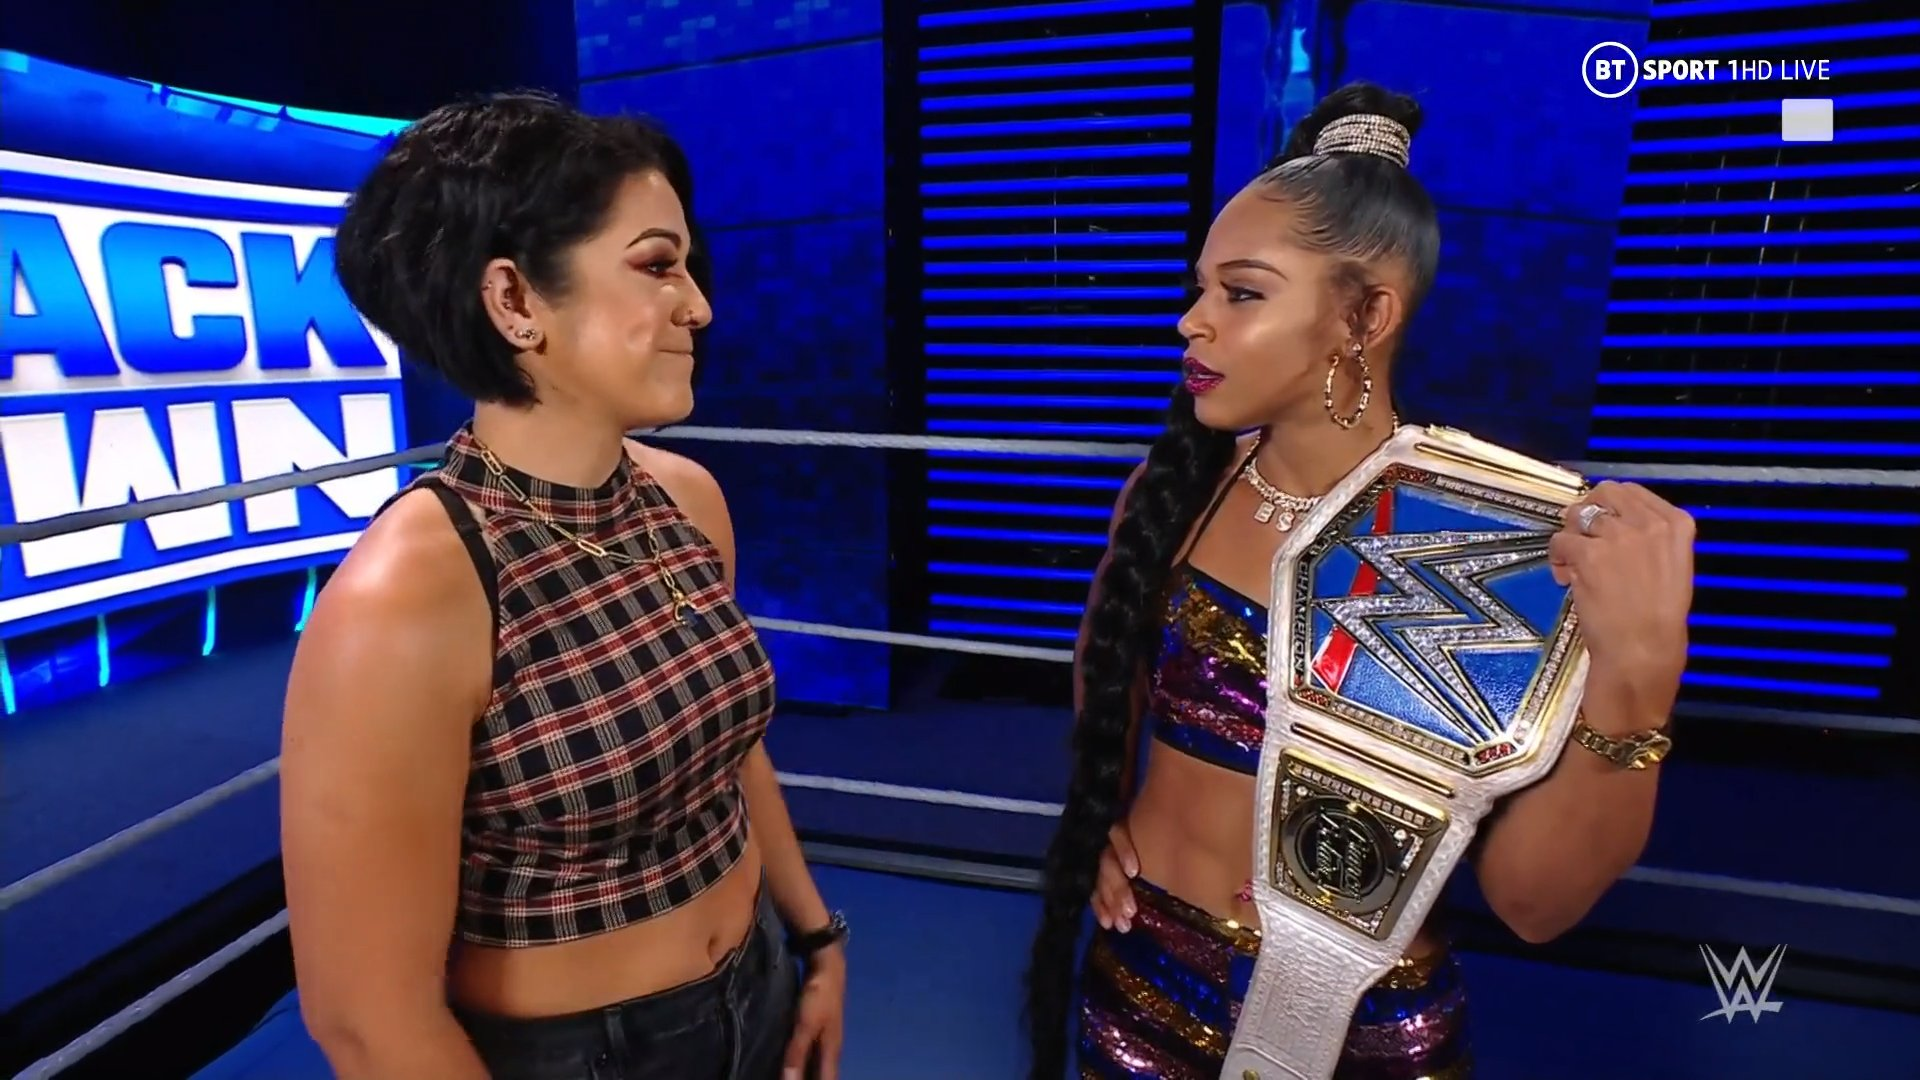 """Bayley says Bianca Belair got """"lucky"""" at WrestleMania and Tamina picks up a win on SmackDown"""